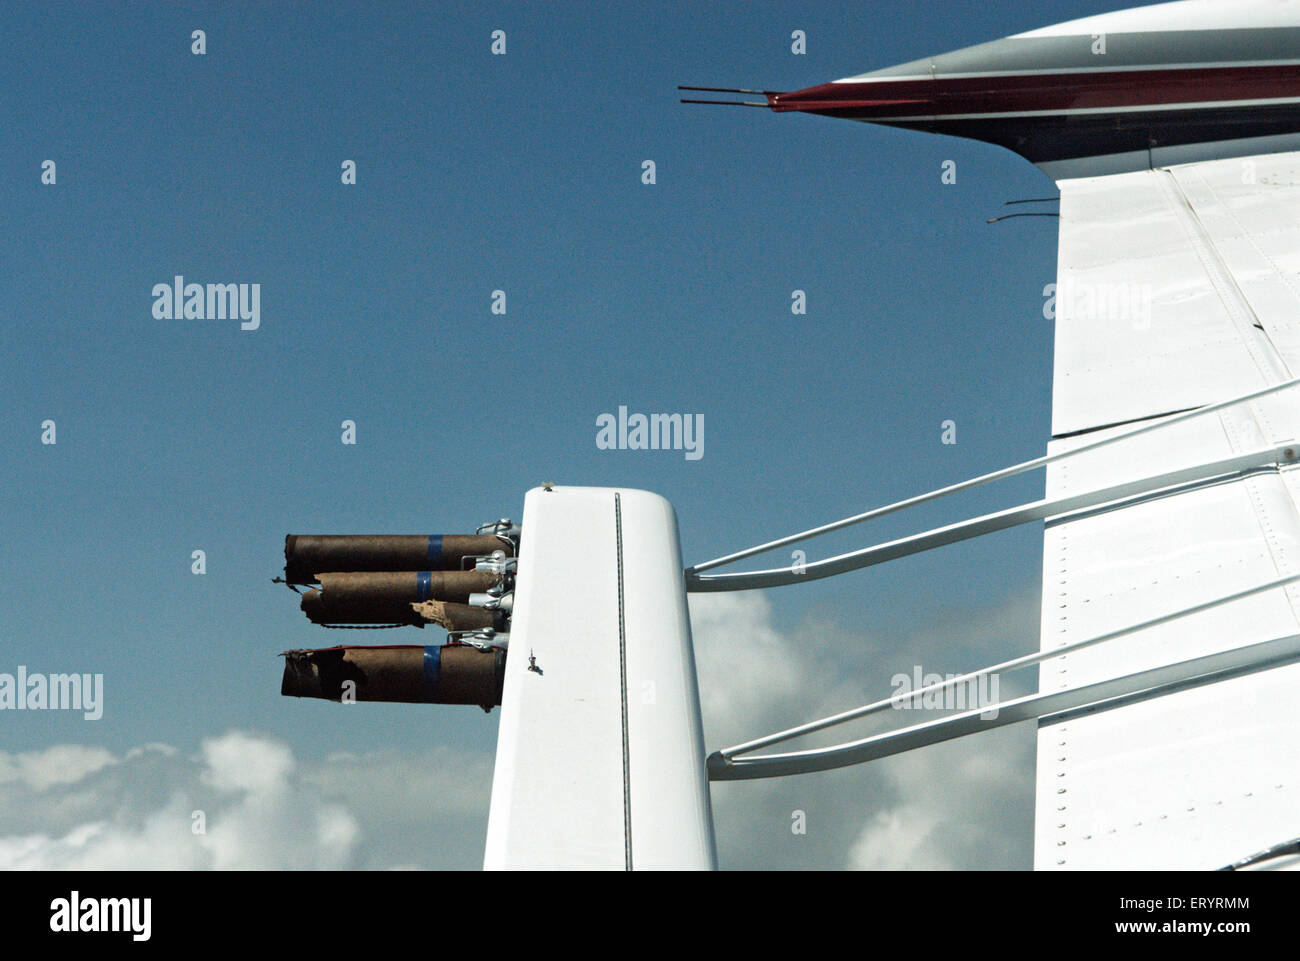 Flaring boosters fitted on wings of piper aircraft ; India - Stock Image